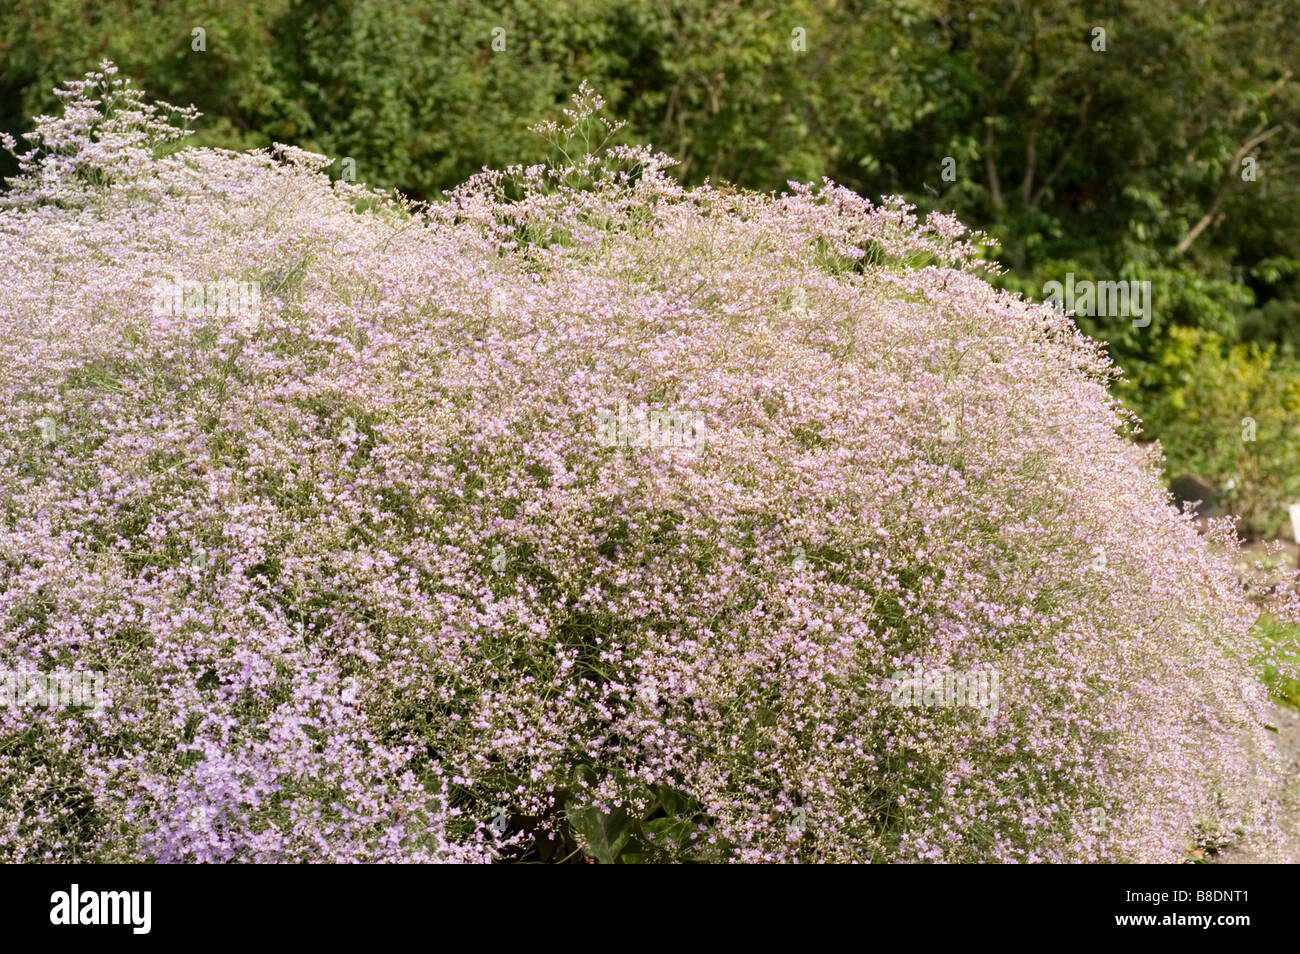 Sea Lavender , Plumbaginaceae, Limonium latifolium, Europe - Stock Image